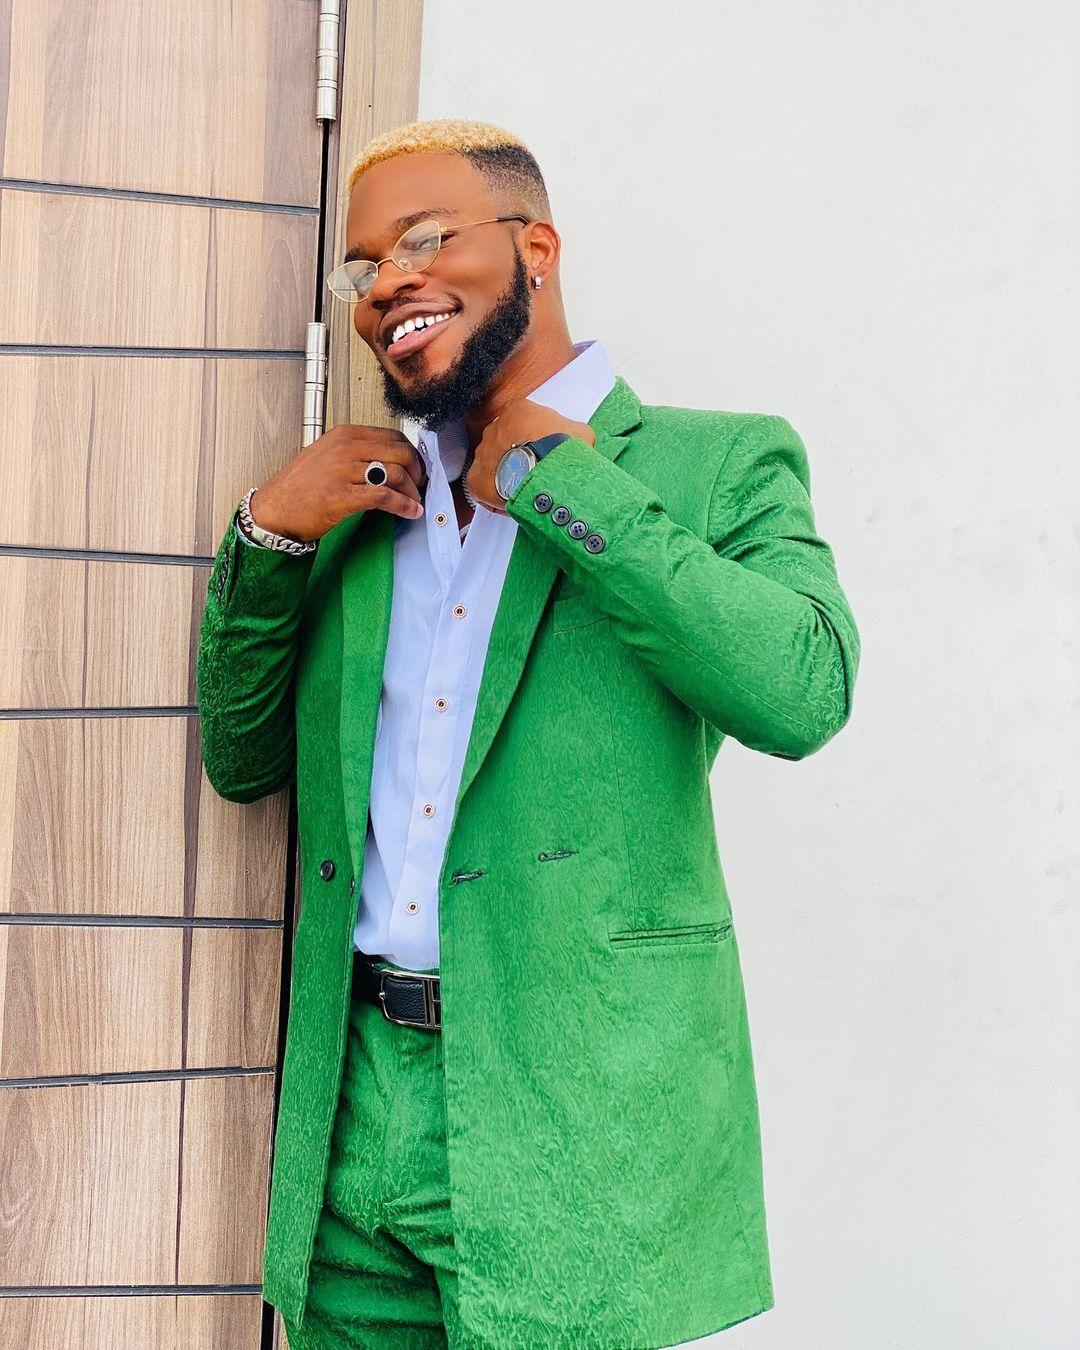 https://www.yabaleftonline.ng/comedian-brodashaggi-laments-bitterly-after-he-was-extorted-by-touts-who-damaged-his-car-in-lekki-lagos-video/